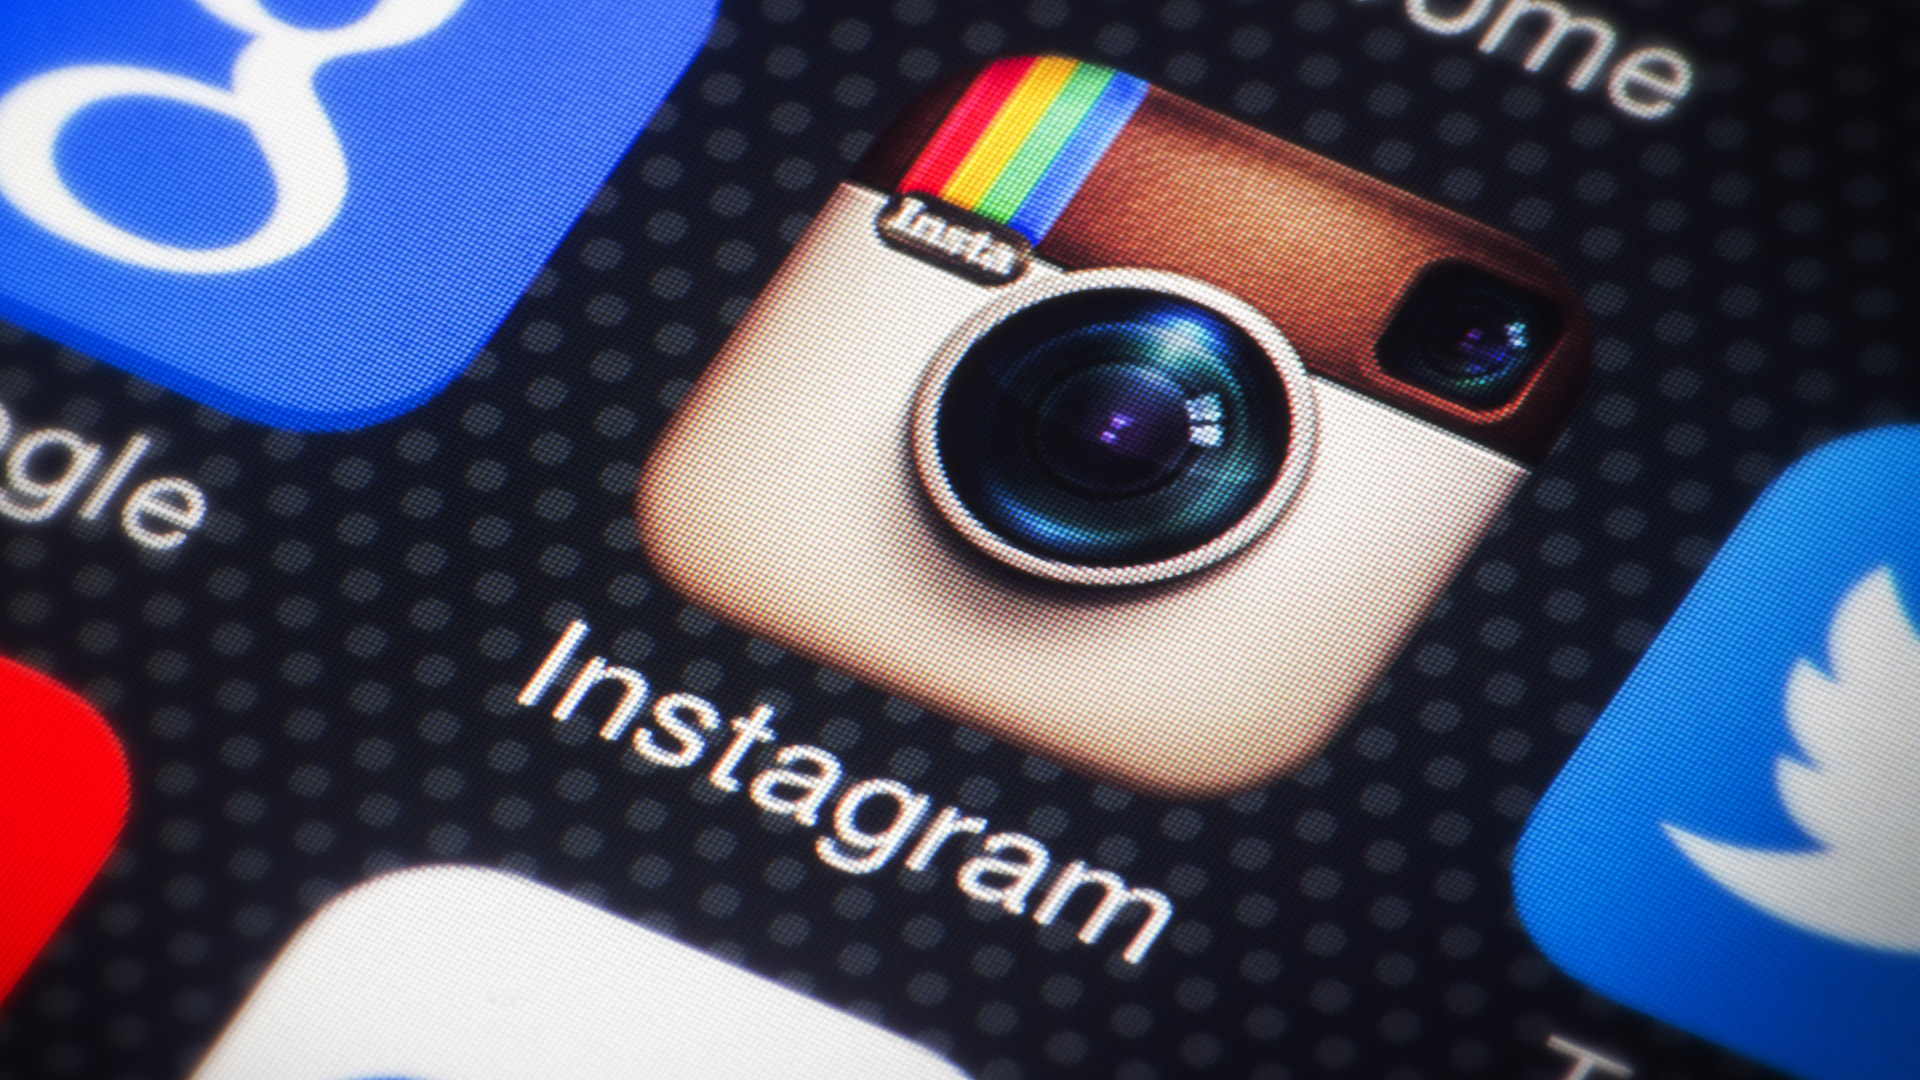 Branded Group Marketing Concepts - Mastering Instagram